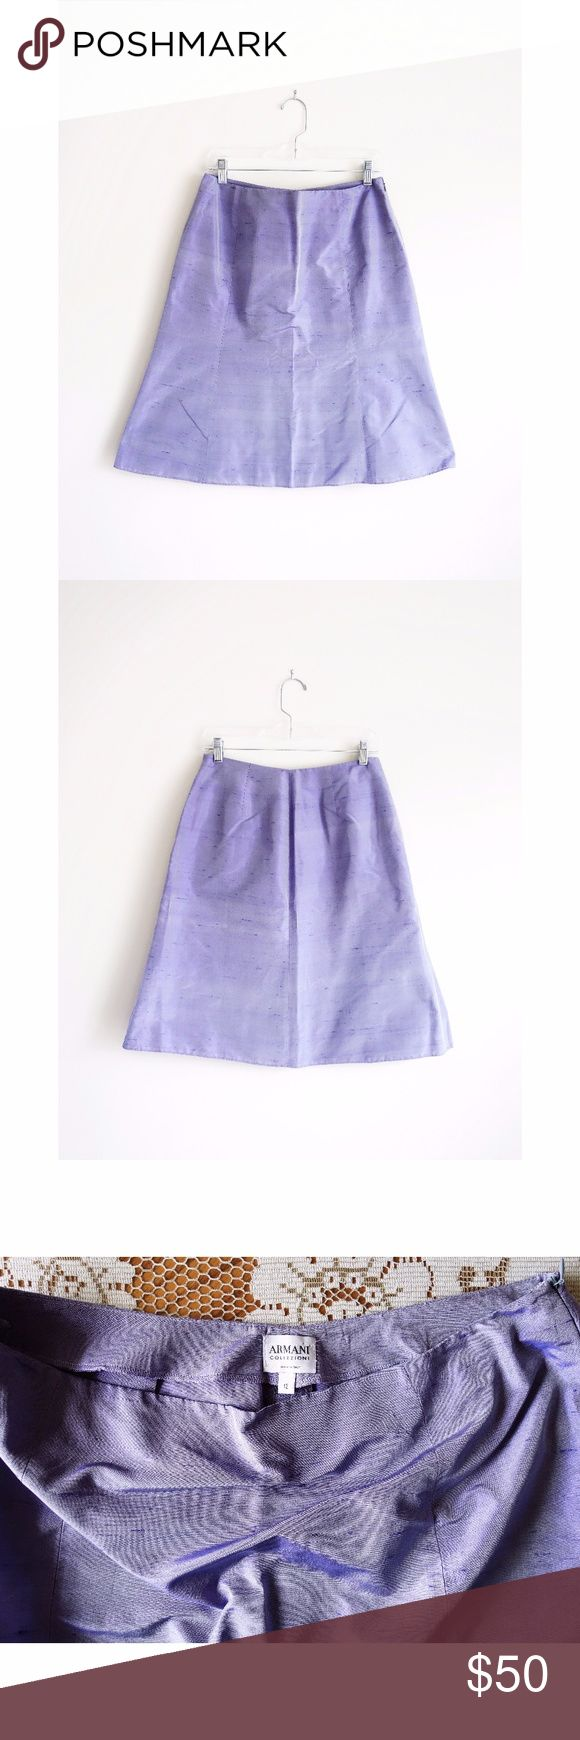 "Armani Collezioni Lavender Silk Skirt IT 48 US 12 Armani Collezioni Lavender Silk Skirt size IT 48 US 12, gently used--no rips, stains, or holes, made in Italy, hidden side zip with hook and eye closure, A-line or very subtle trumpet silhouette that flares out slightly at hem, unlined, 100% dupioni or shantung silk in a light purple lavender with characteristic slugs and crosswise ribs/streaks of hyperpigmented threads that intentionally look like pulls, 15"" across waist, 21"" across hips 8""…"